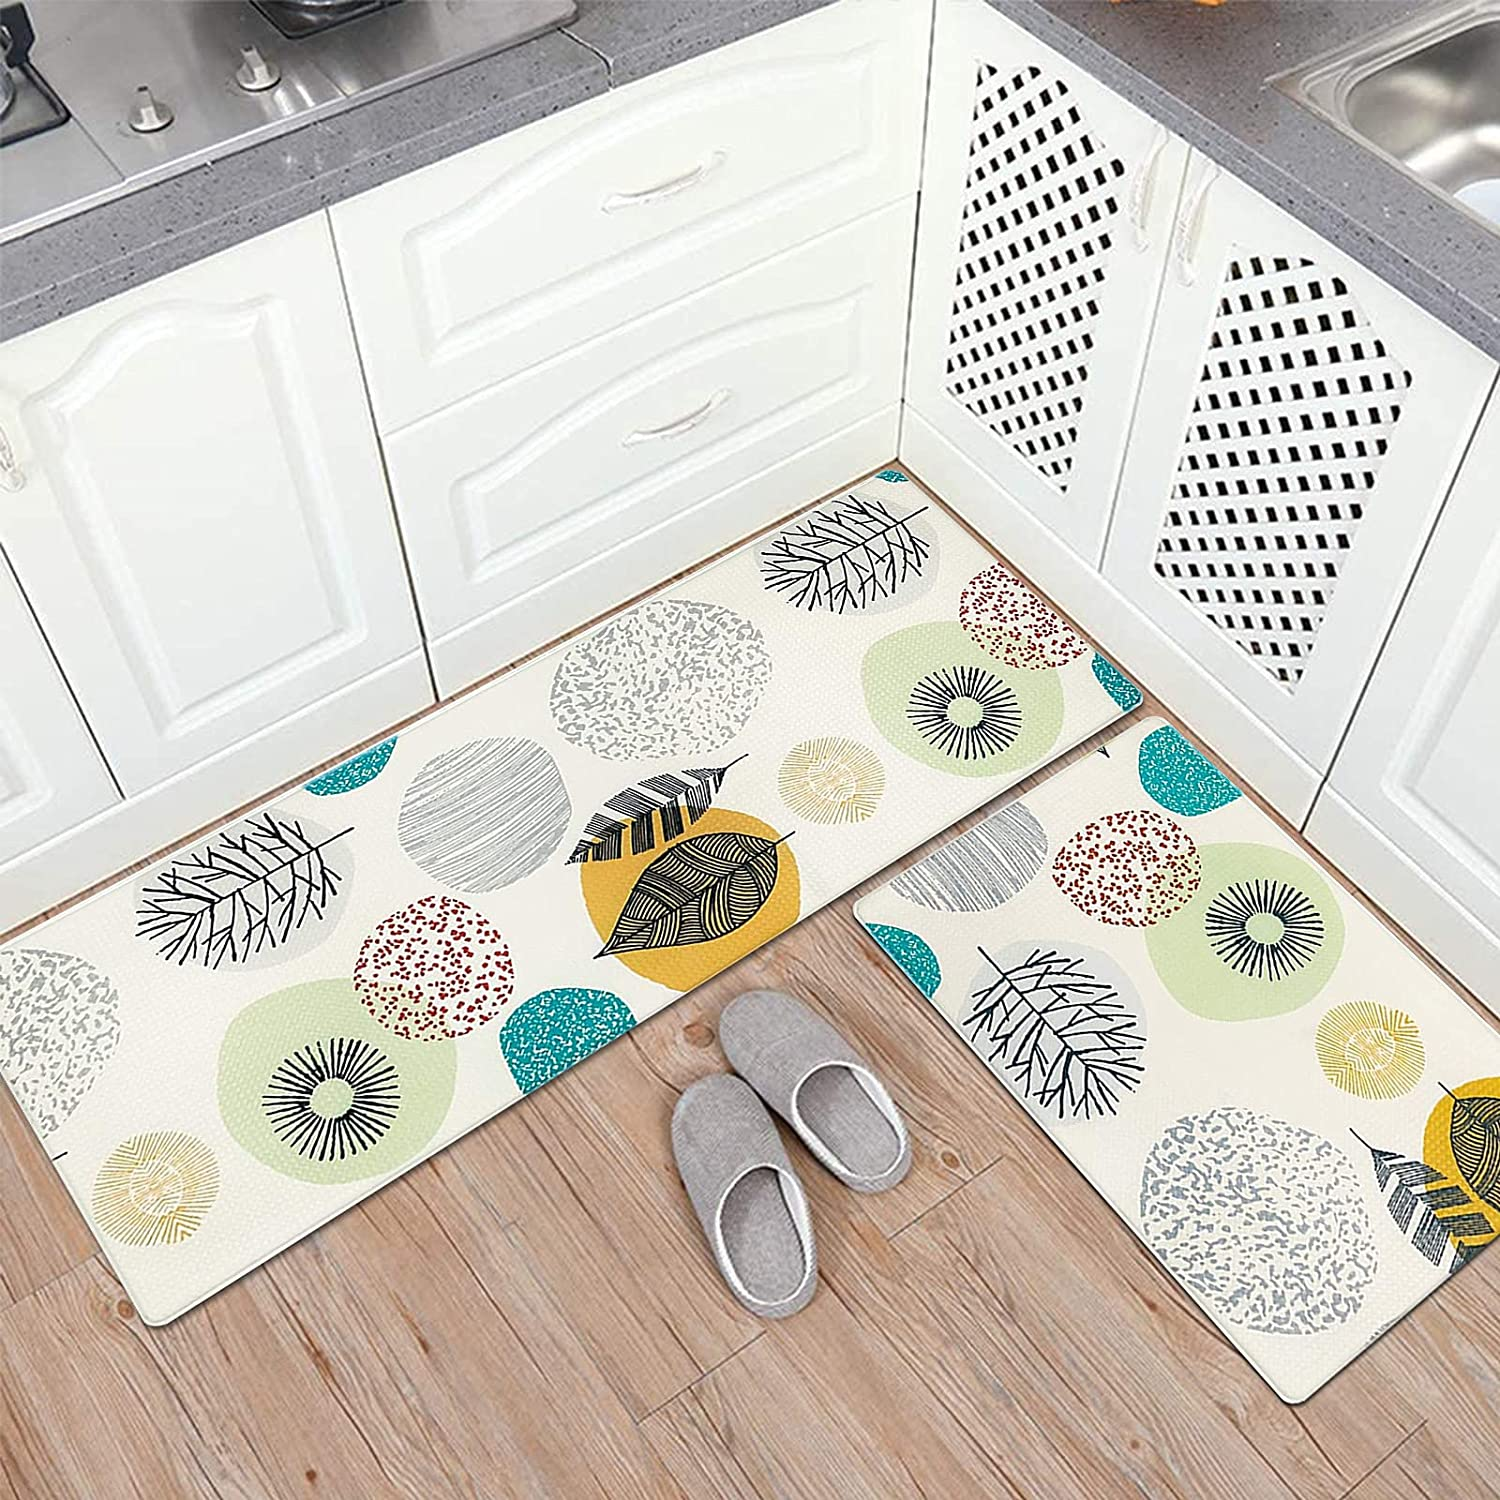 Buy Pauwer Anti Fatigue Kitchen Floor Mat Set Of 2 Non Slip Waterproof Comfort Standing Desk Mats Thick Cushioned Anti Fatigue Kitchen Rugs And Mats Colorful Online In Turkey B088k6hpql